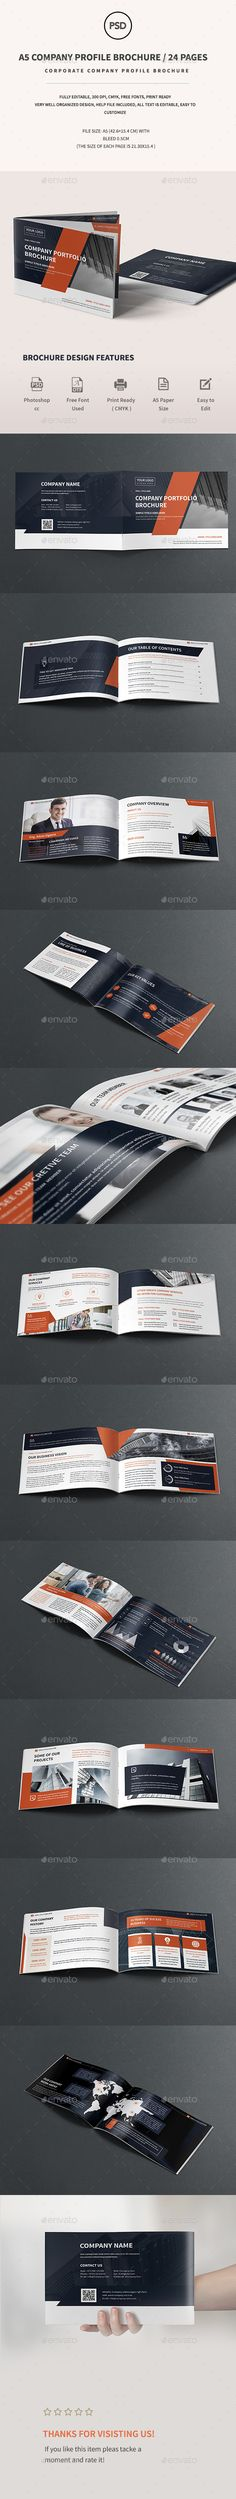 A5 Corporate Company Brochure Template PSD. Download here: https://graphicriver.net/item/a5-corporate-company-brochure-/17261192?ref=ksioks